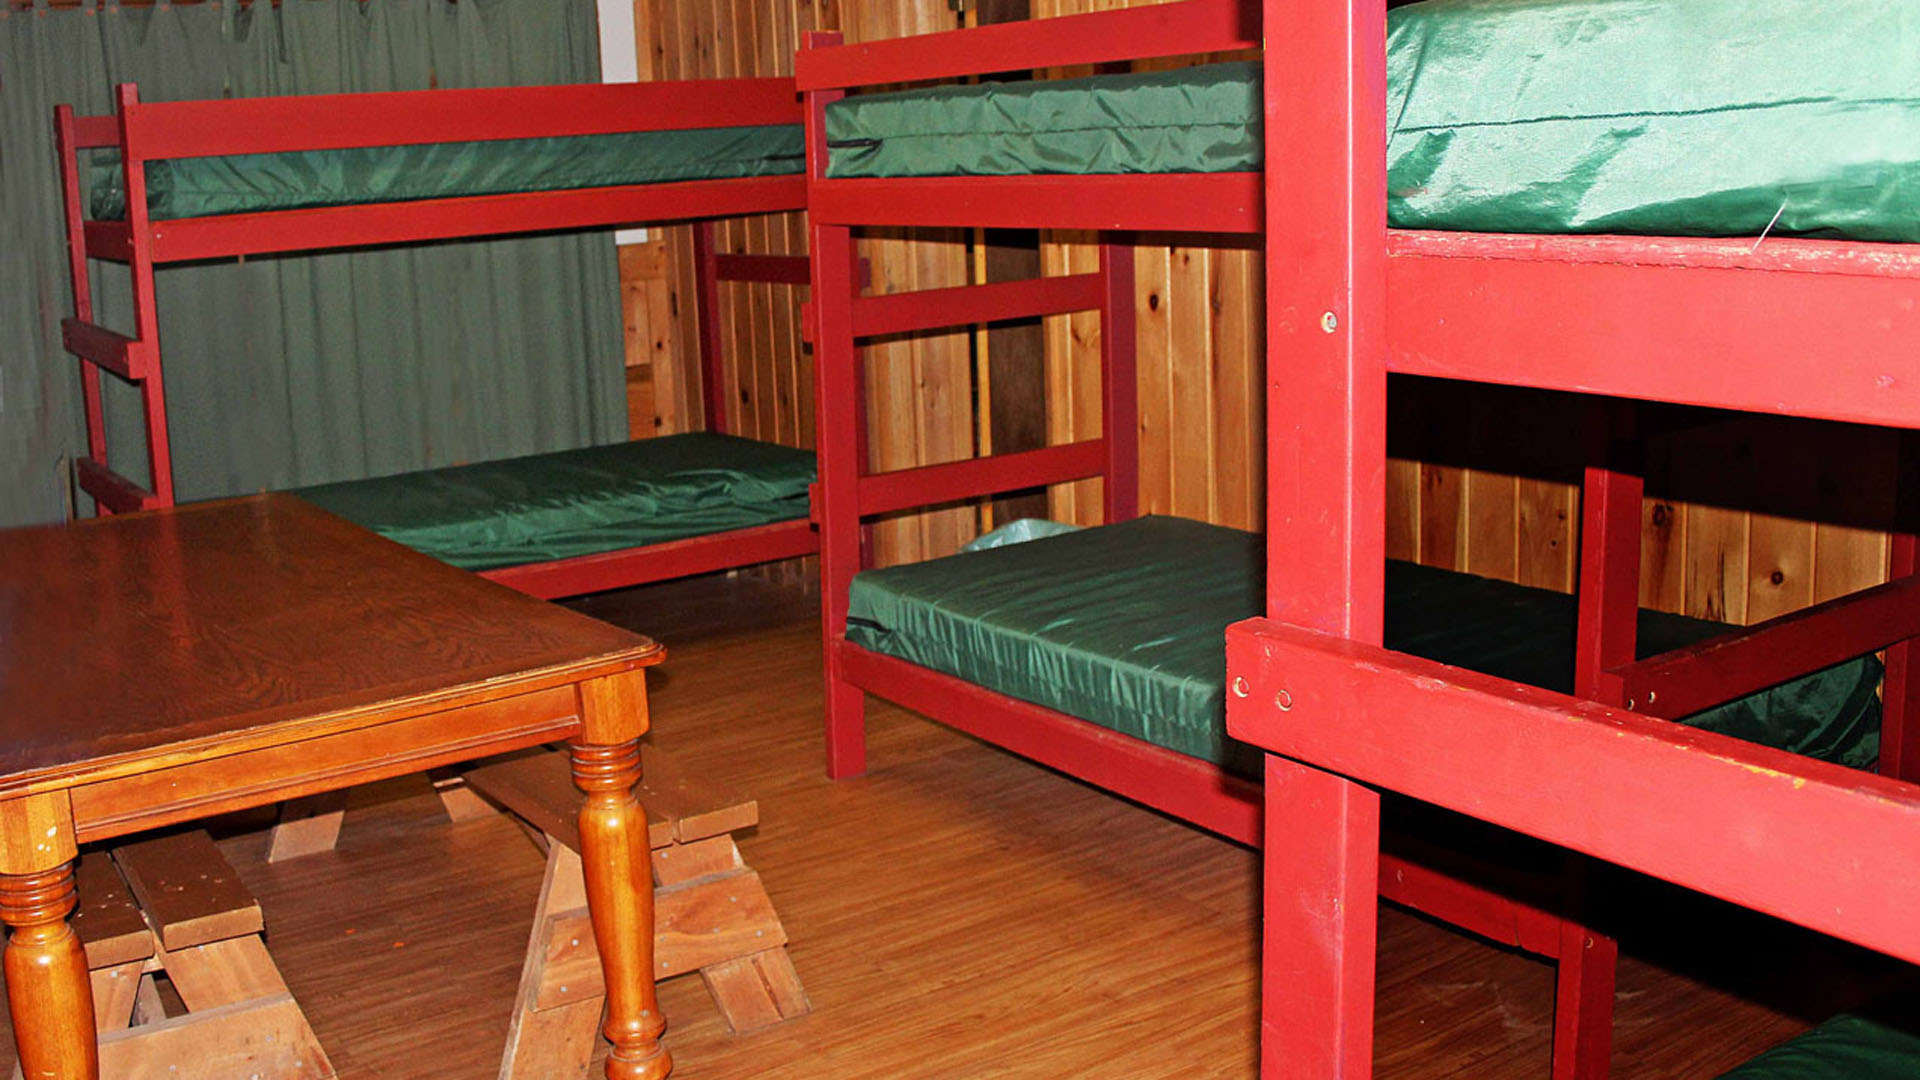 close up of bunkbeds in bunk house Indian Head Canoeing Rafting Kayaking Tubing Delaware River